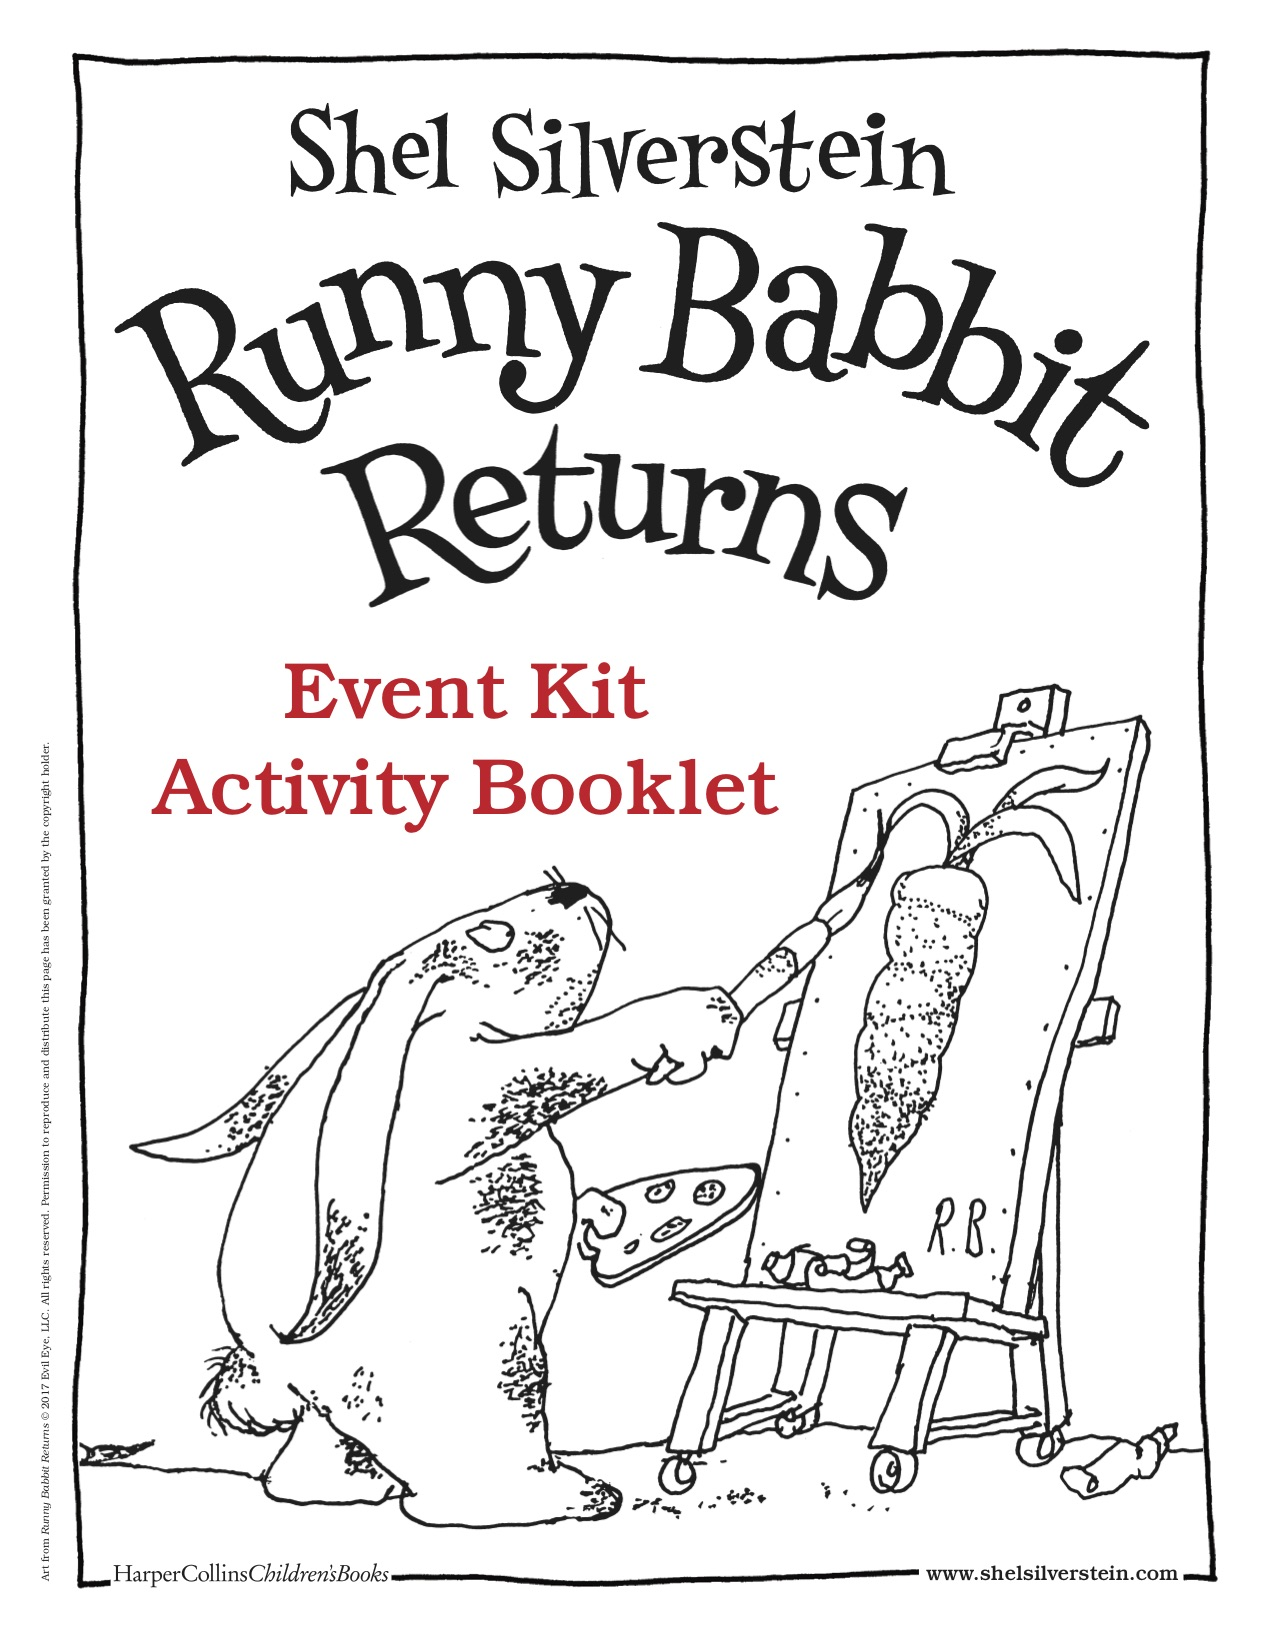 This is a picture of the book cover of Runny Babbit Returns.